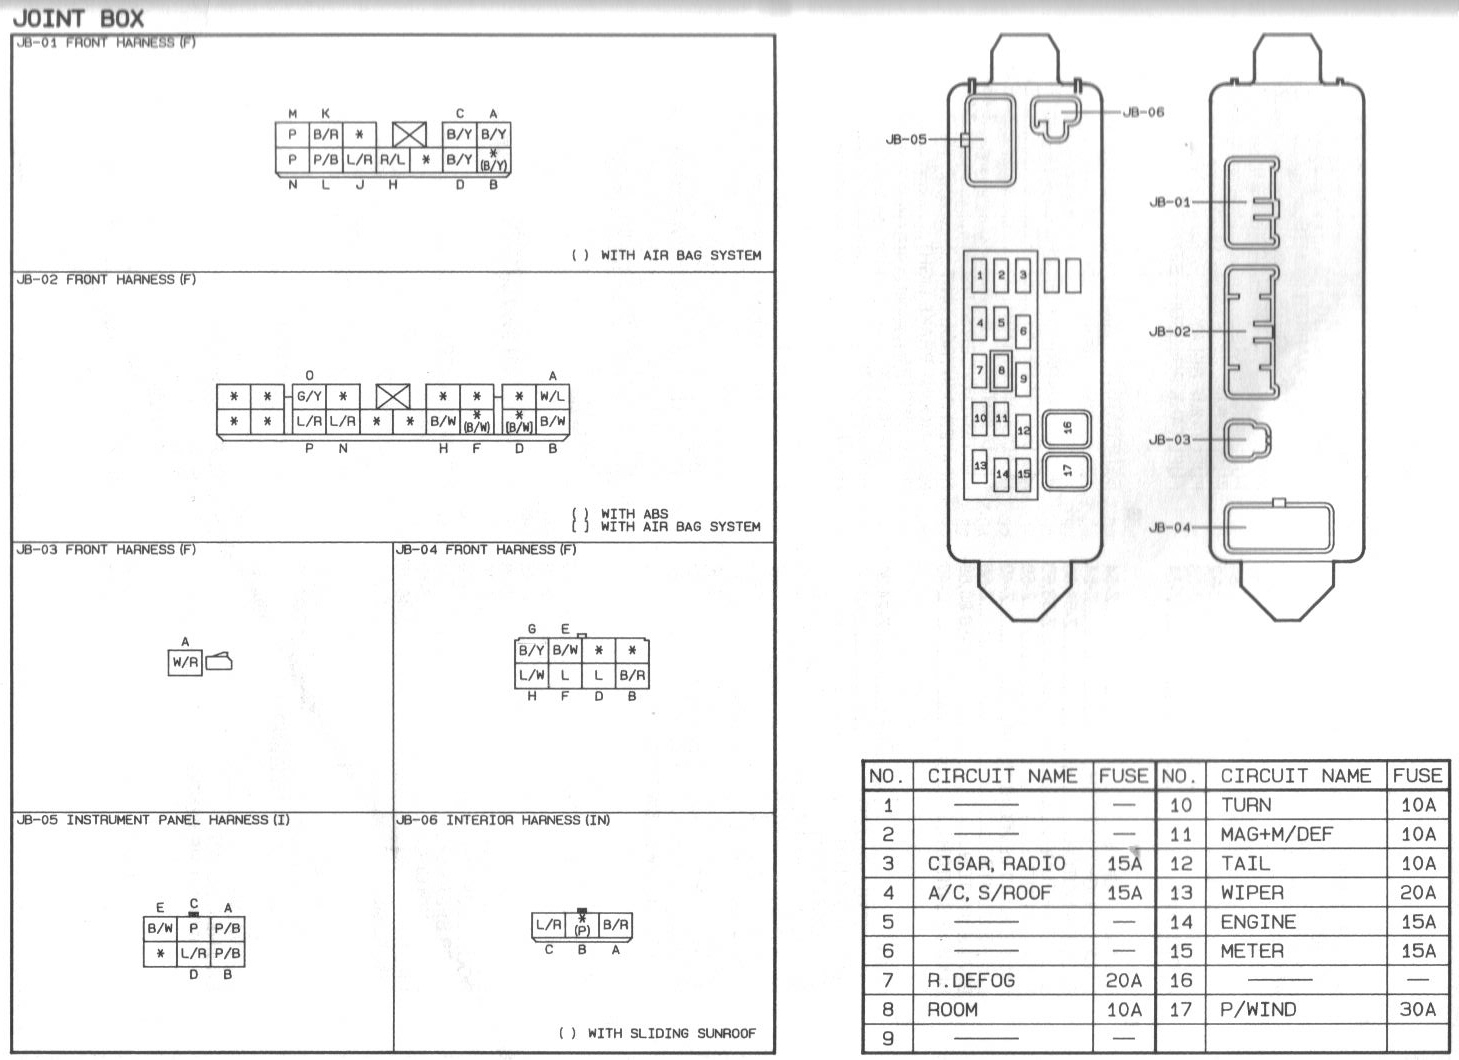 1997 Mazda B2300 Starter Wiring Diagram Great Installation Of Ford Thunderbird Protege Fuse Box Library Explorer